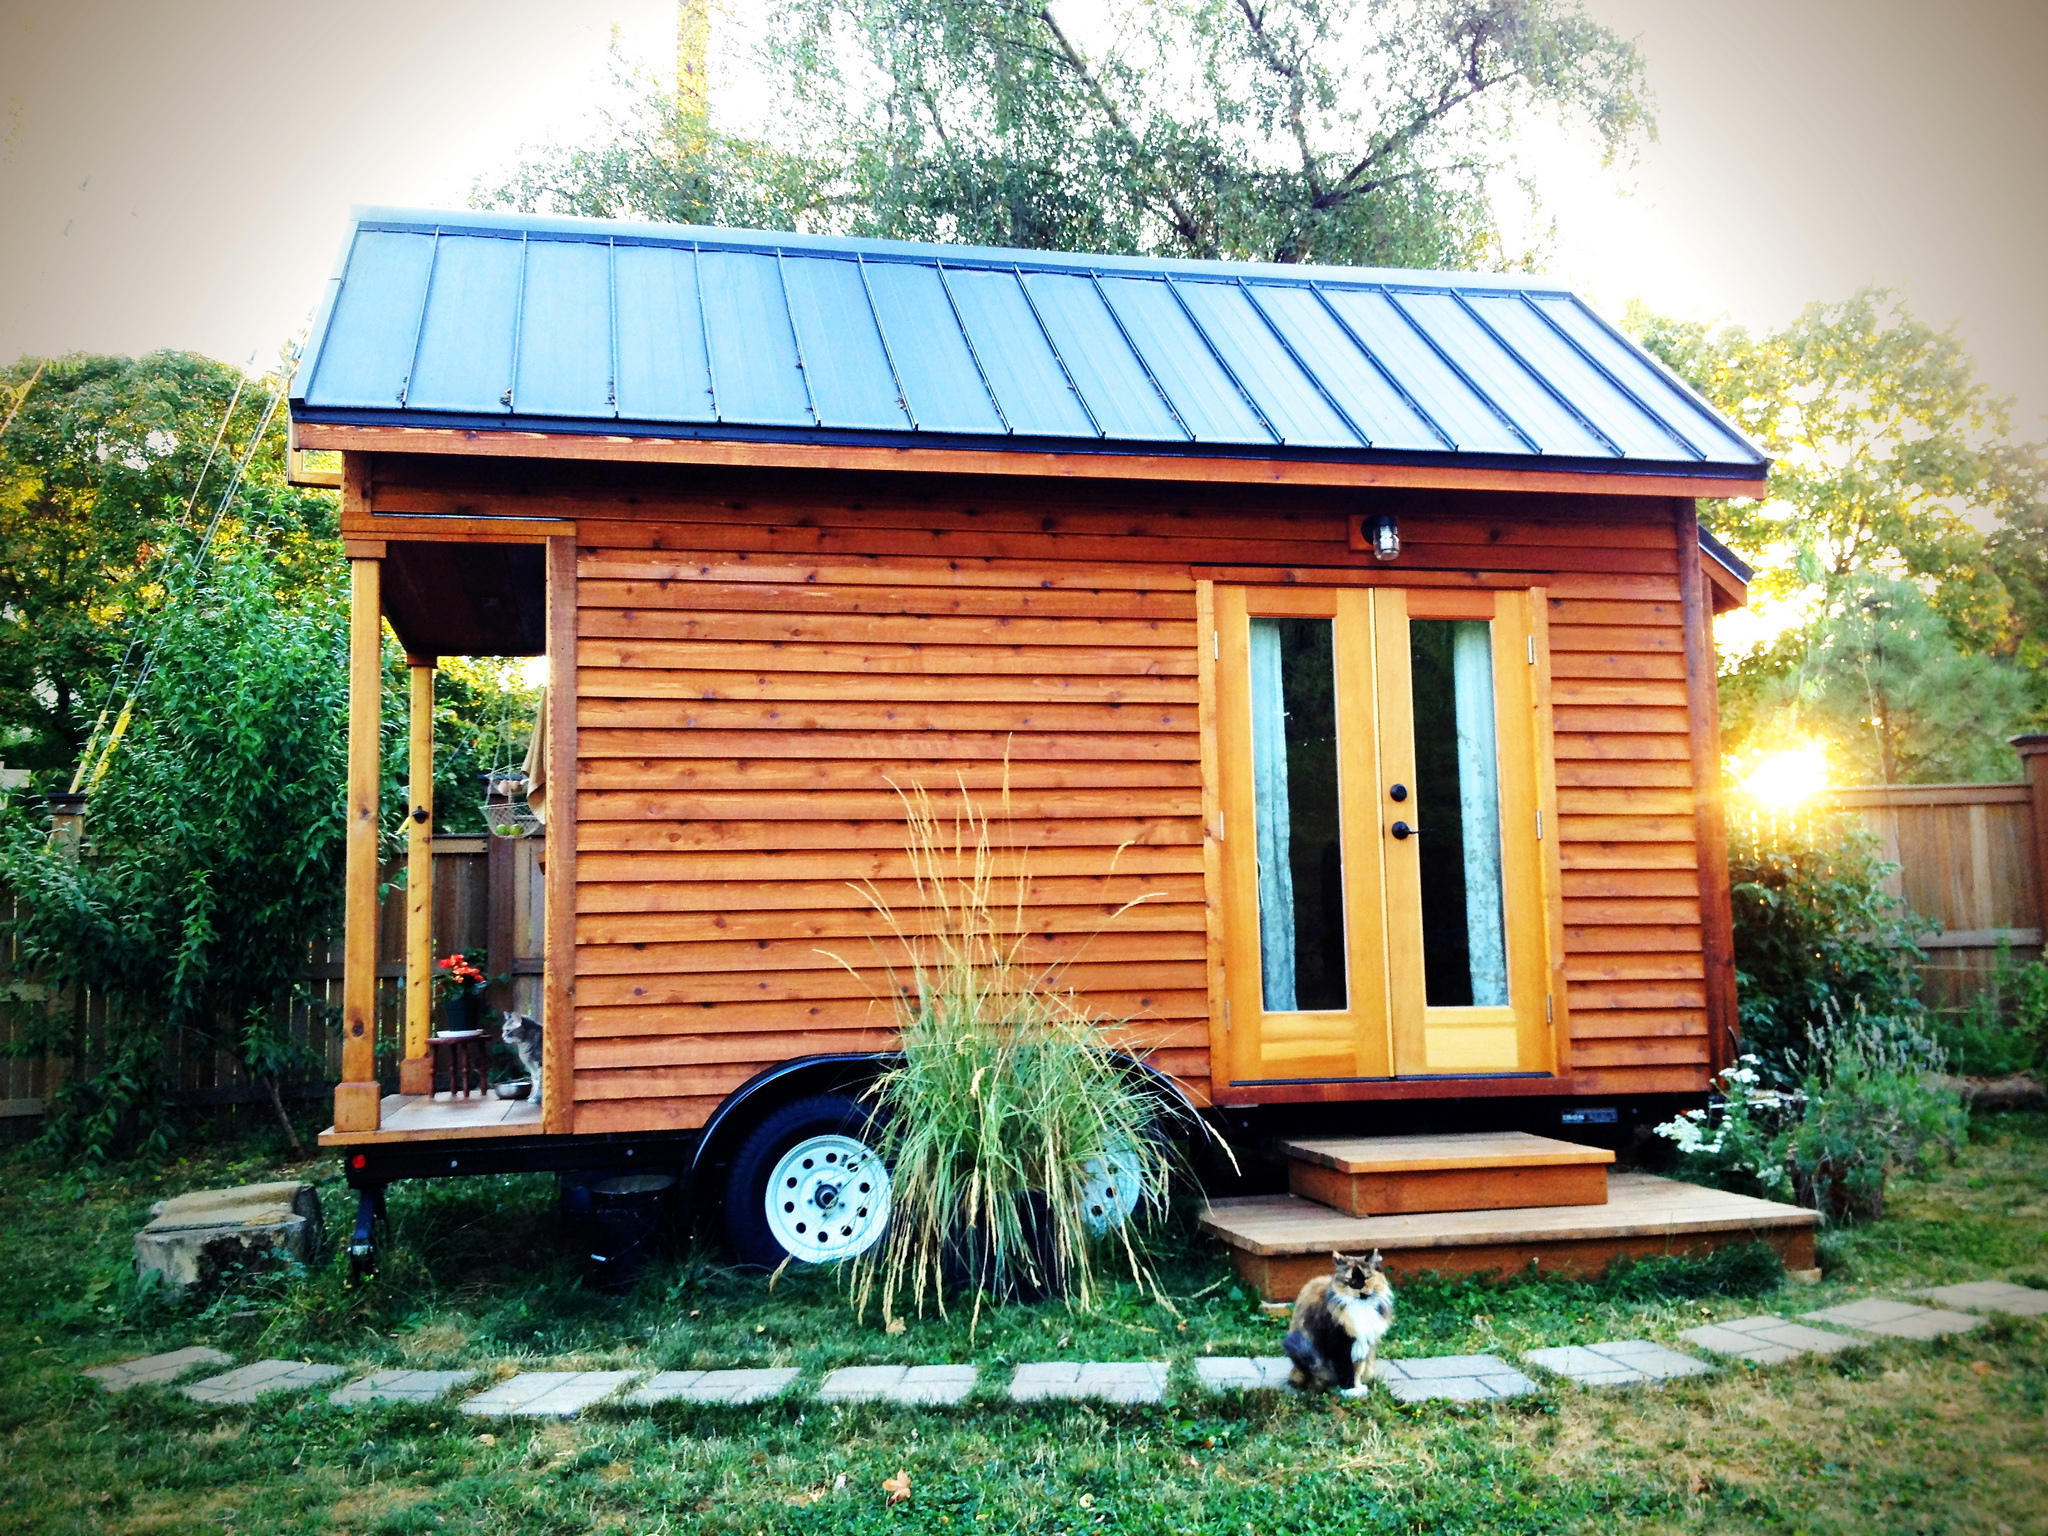 Affordable Tiny Homes Planned For People With Mental